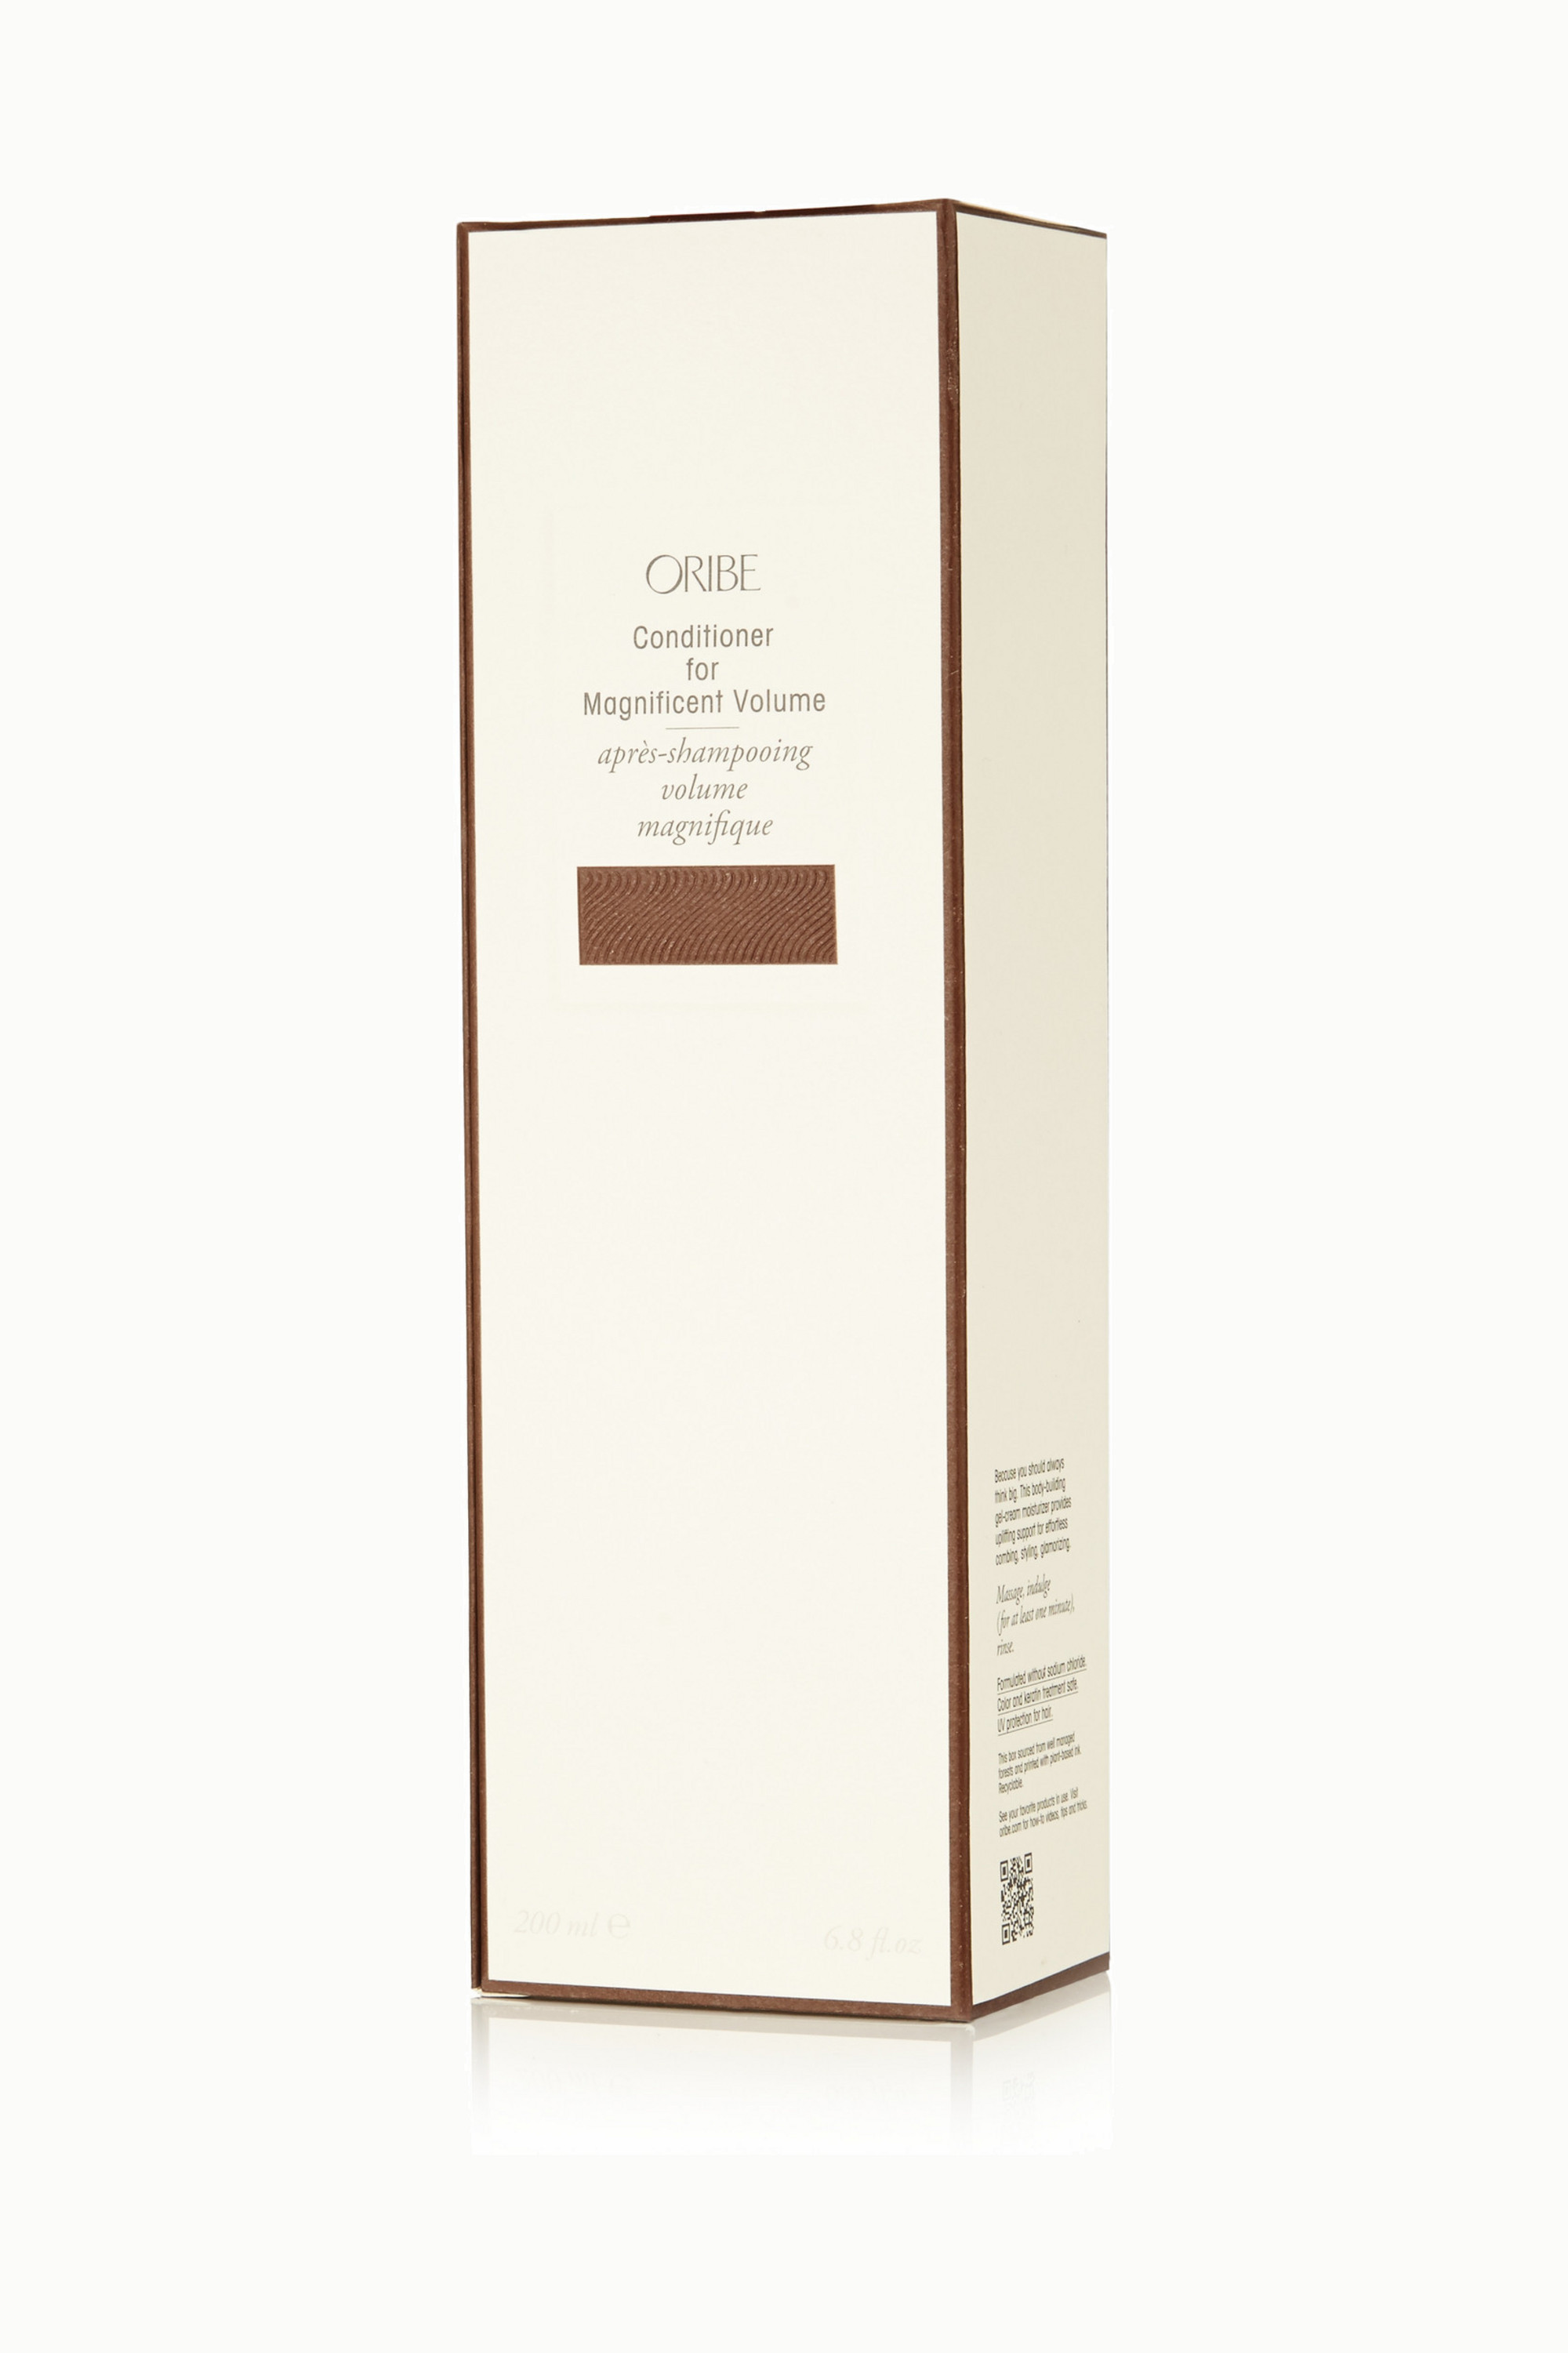 ORIBE Conditioner for Magnificent Volume, 200ml